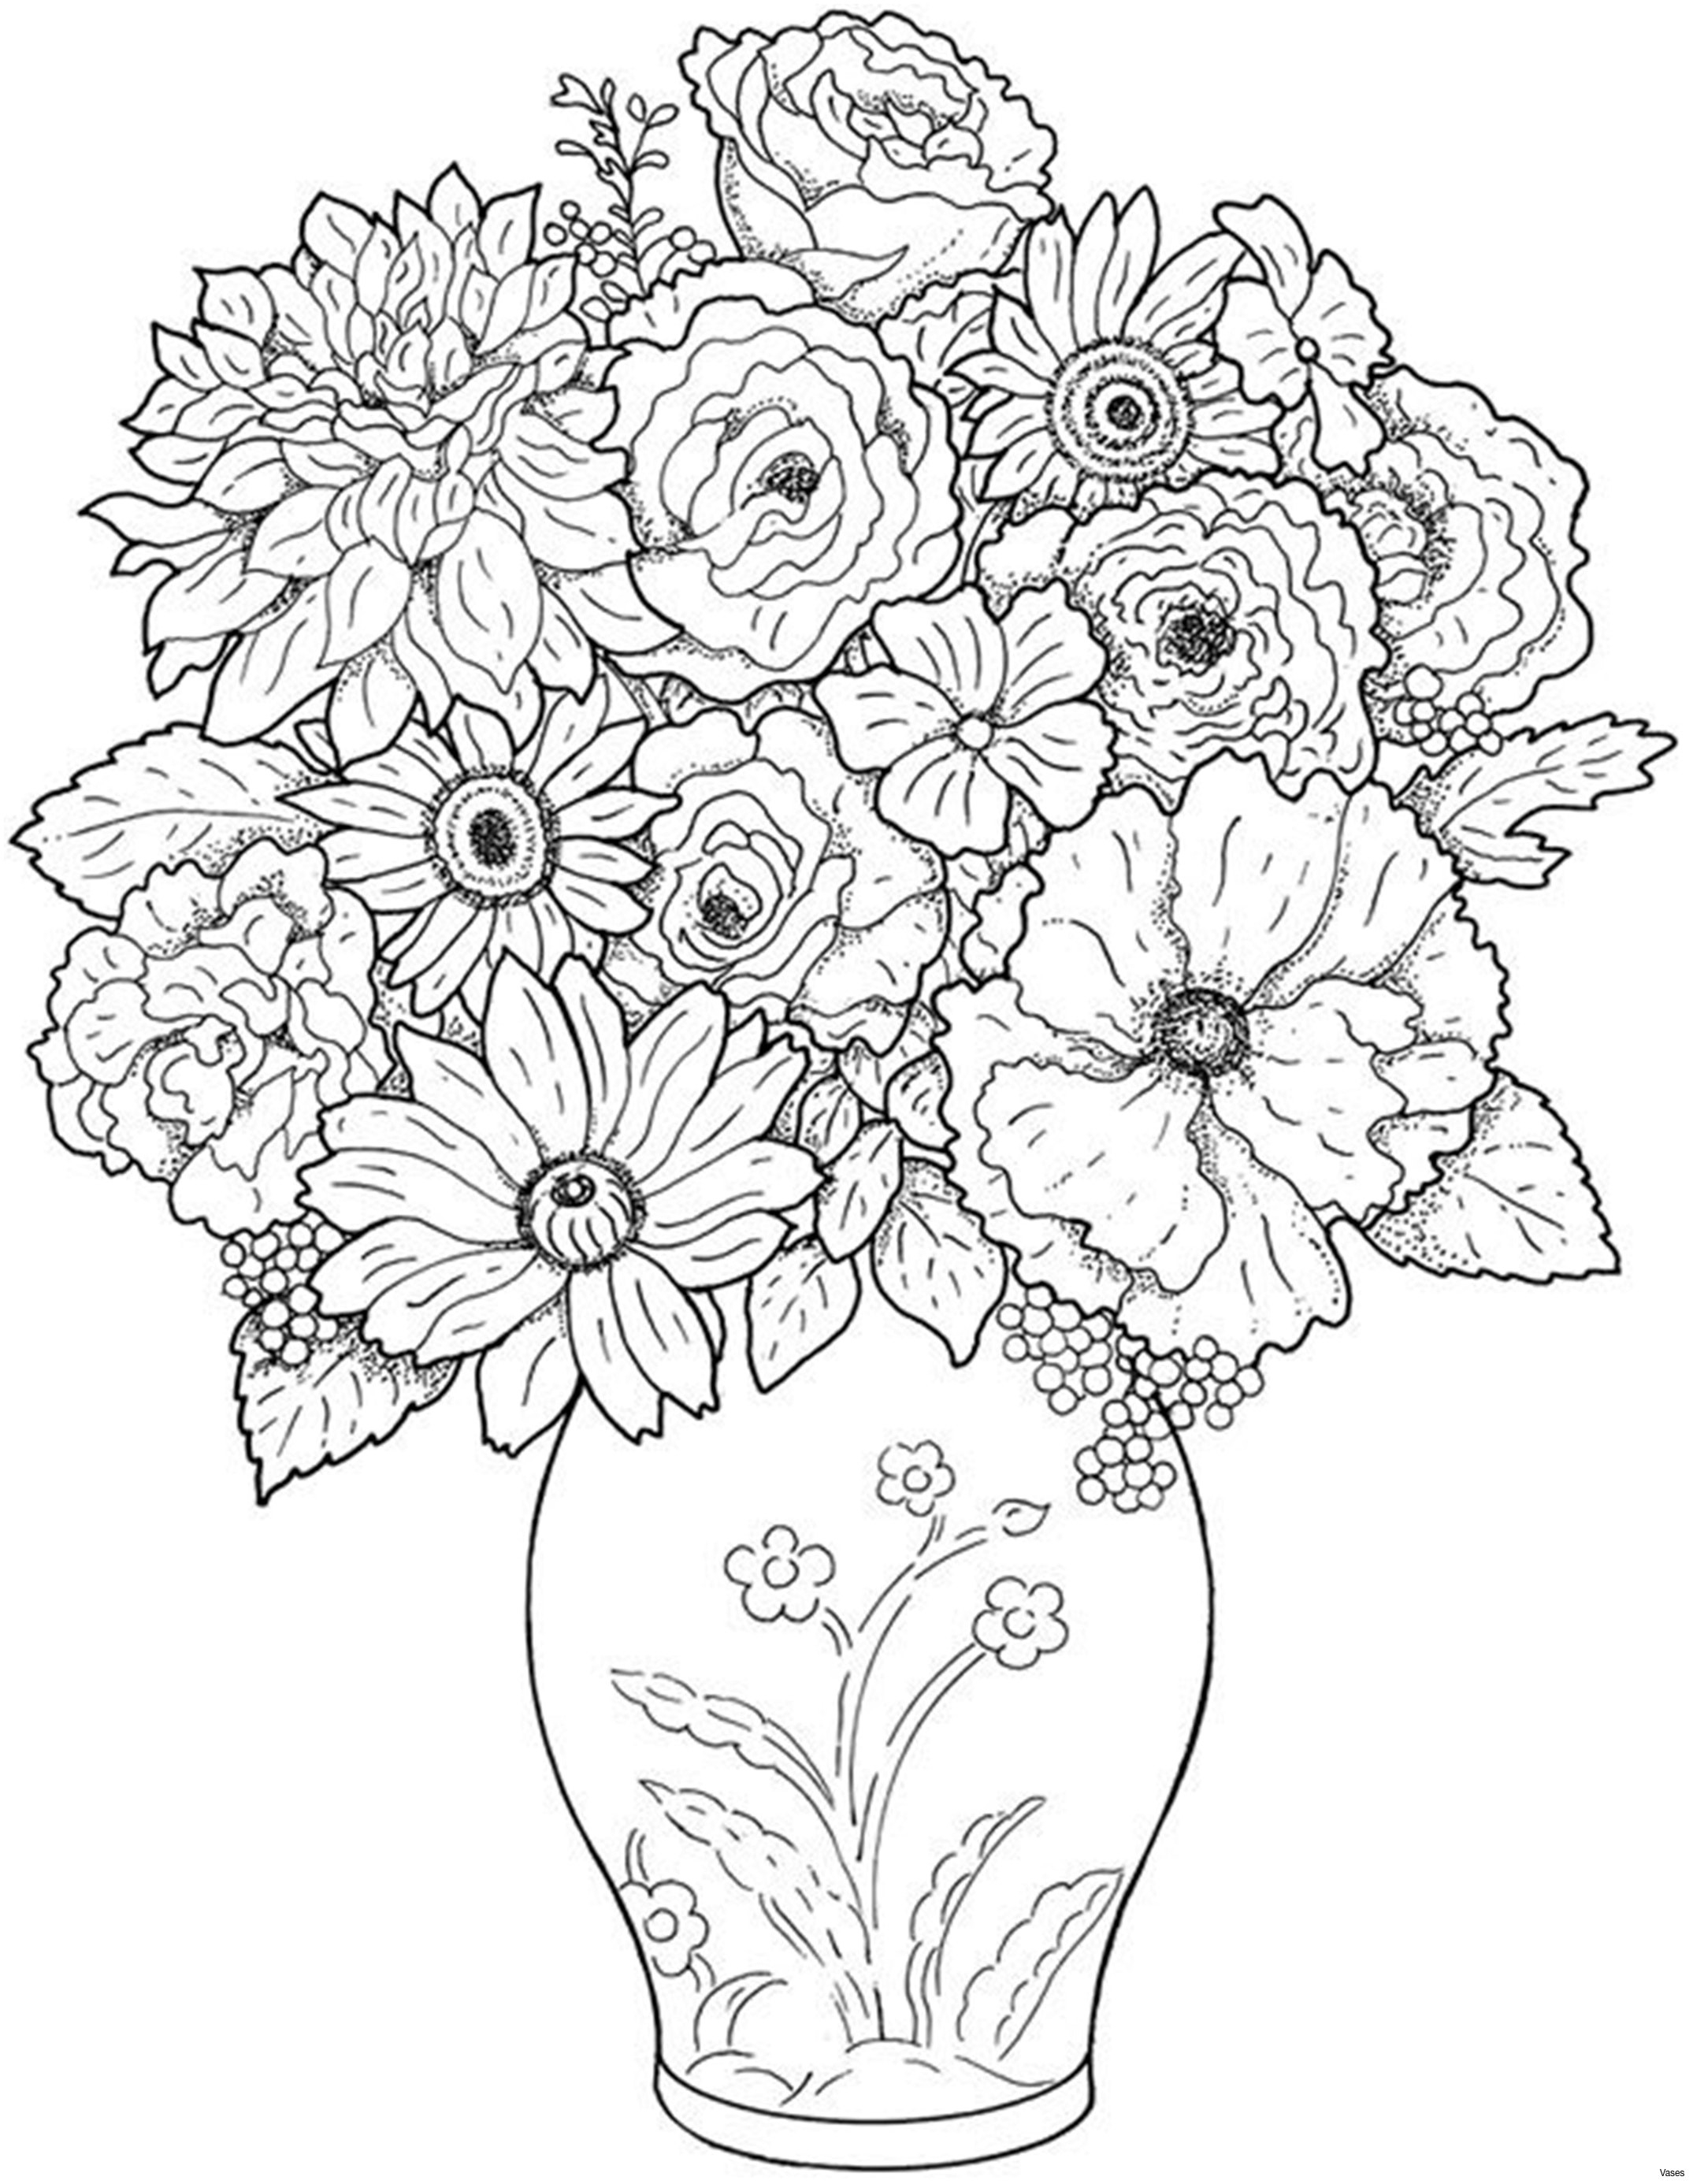 garden pictures to color flower garden coloring pages to download and print for free pictures color to garden